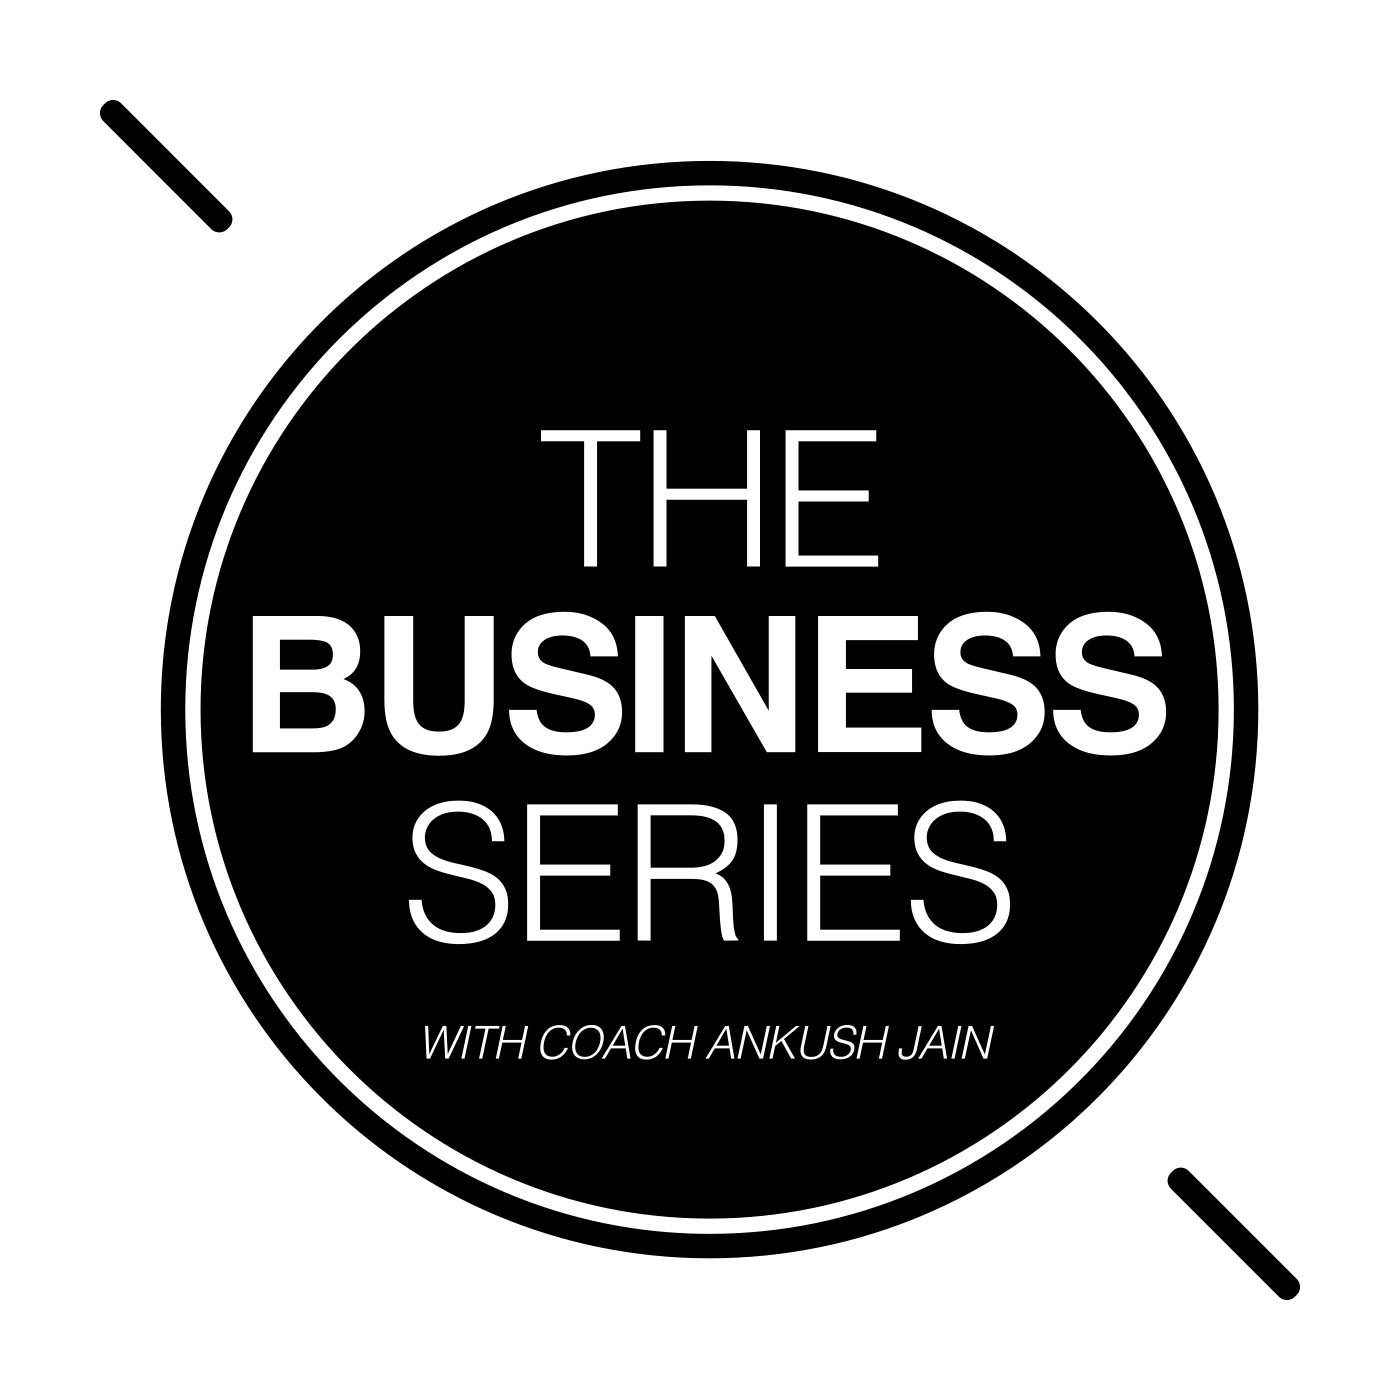 The Business Series Podcast